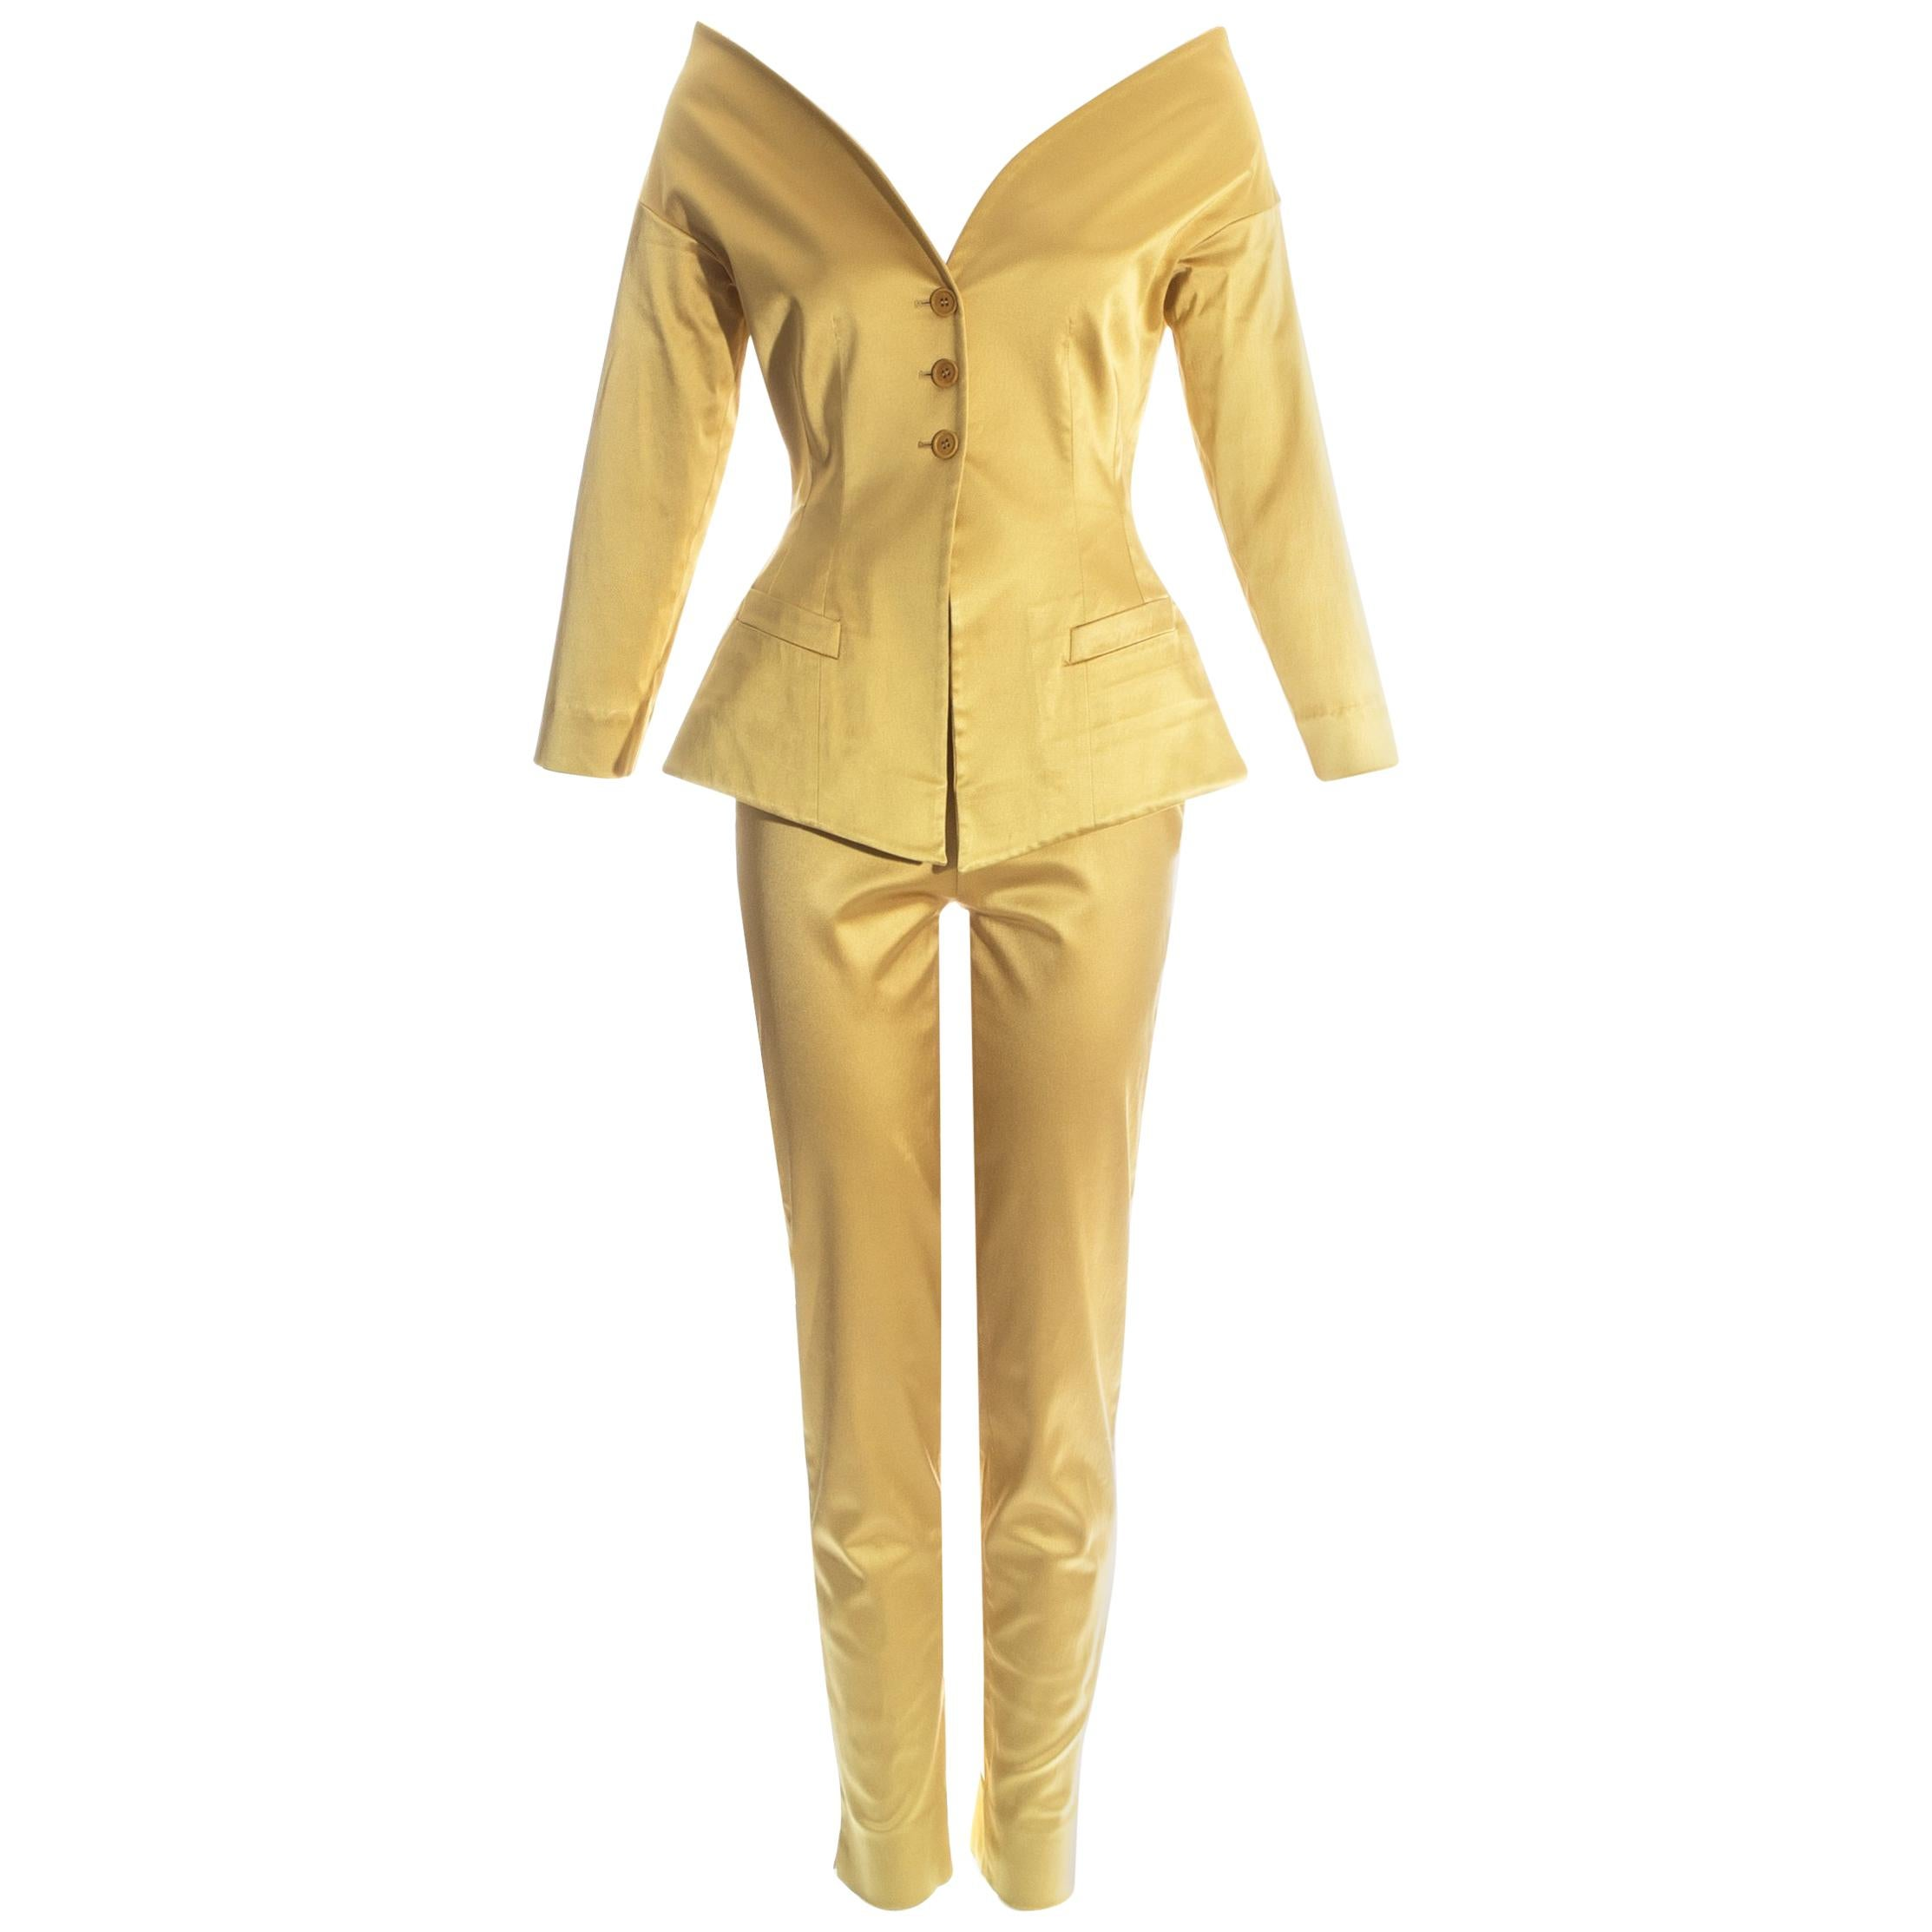 07b4d599af9 Satin Pant Suits - 57 For Sale on 1stdibs